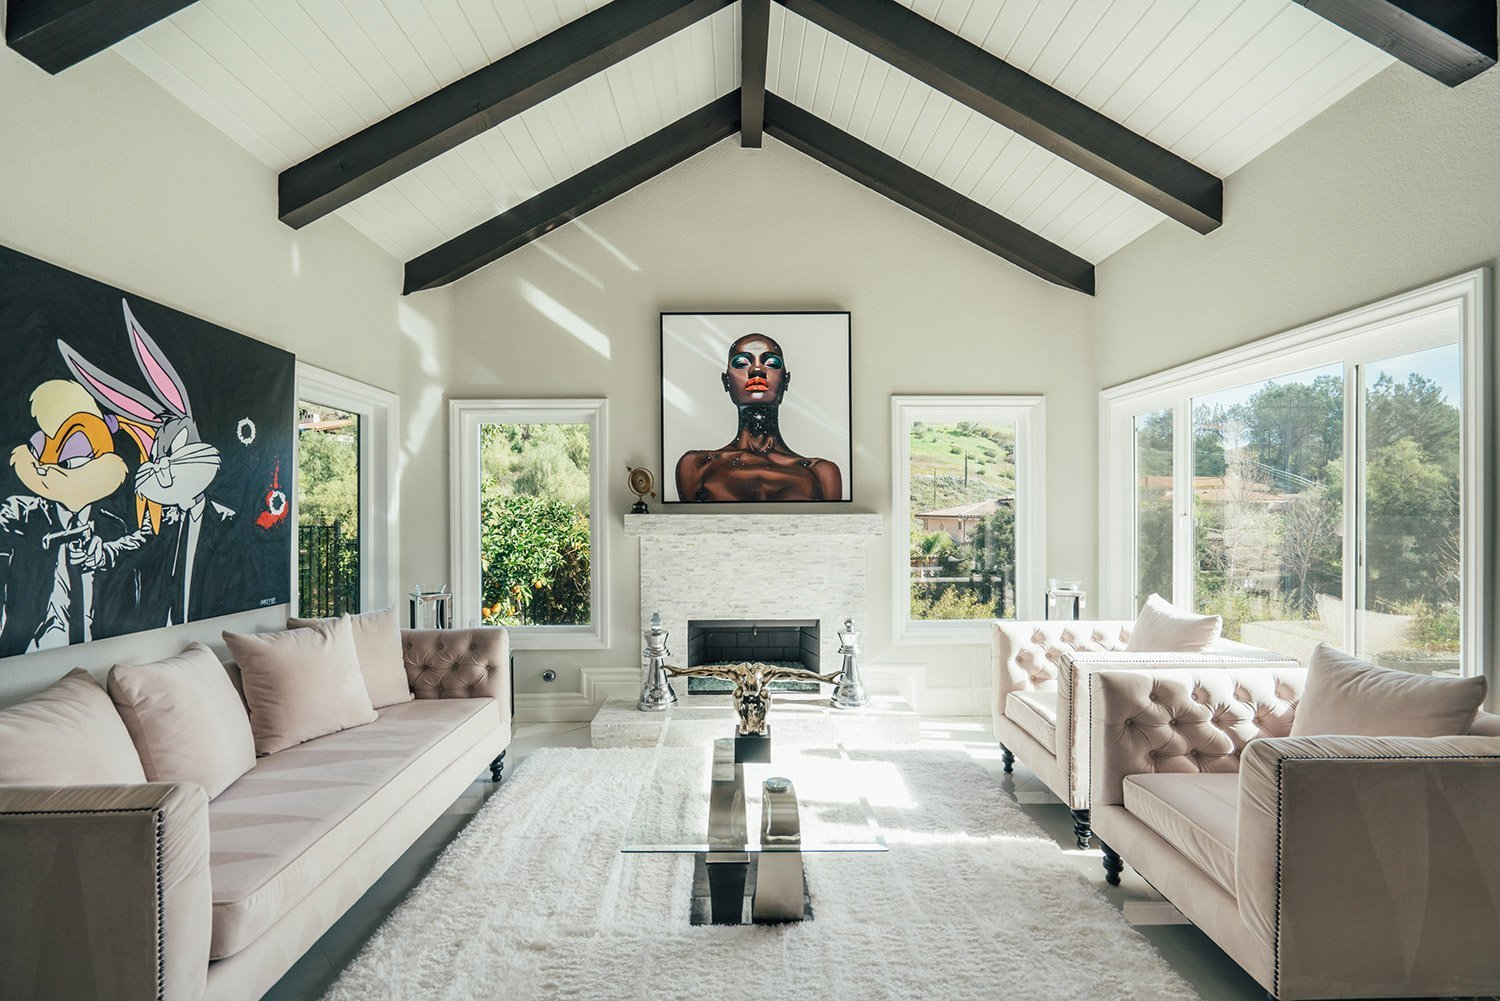 The lounge of Shaquille O'Neal's house in Bell Canyon| Source: Instagram/Shaquille O'Neal